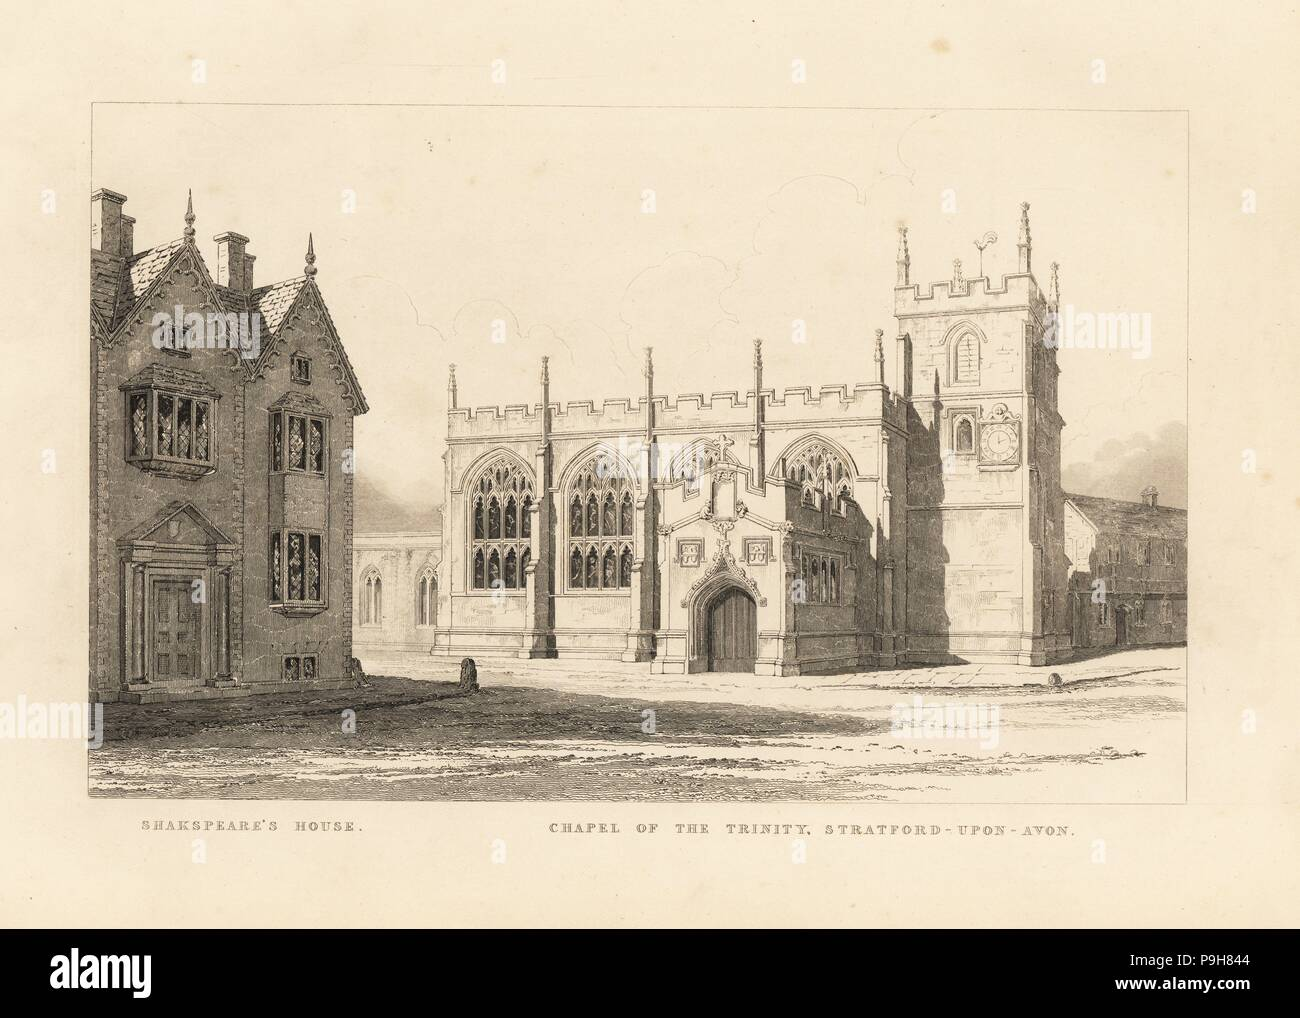 View of the Chapel of the Trinity next to Shakespeare's House in Stratford Upon Avon. Etching by Thomas Fisher from his Paintings on the Walls of the Chapel of the Trinity, Stratford upon Avon, 1808. - Stock Image